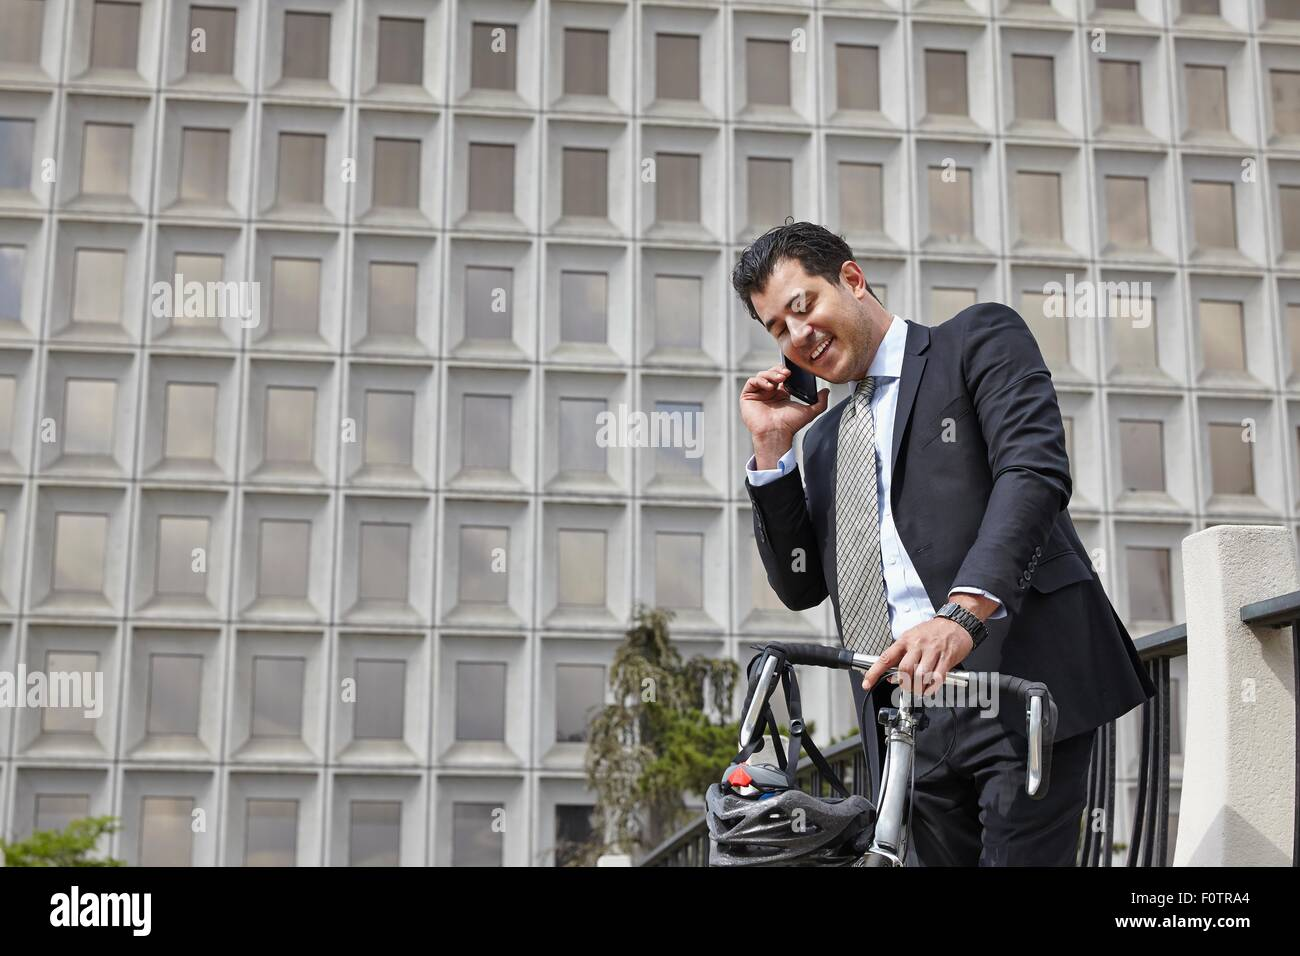 Mid adult business man holding bicycle, making telephone call using smartphone - Stock Image